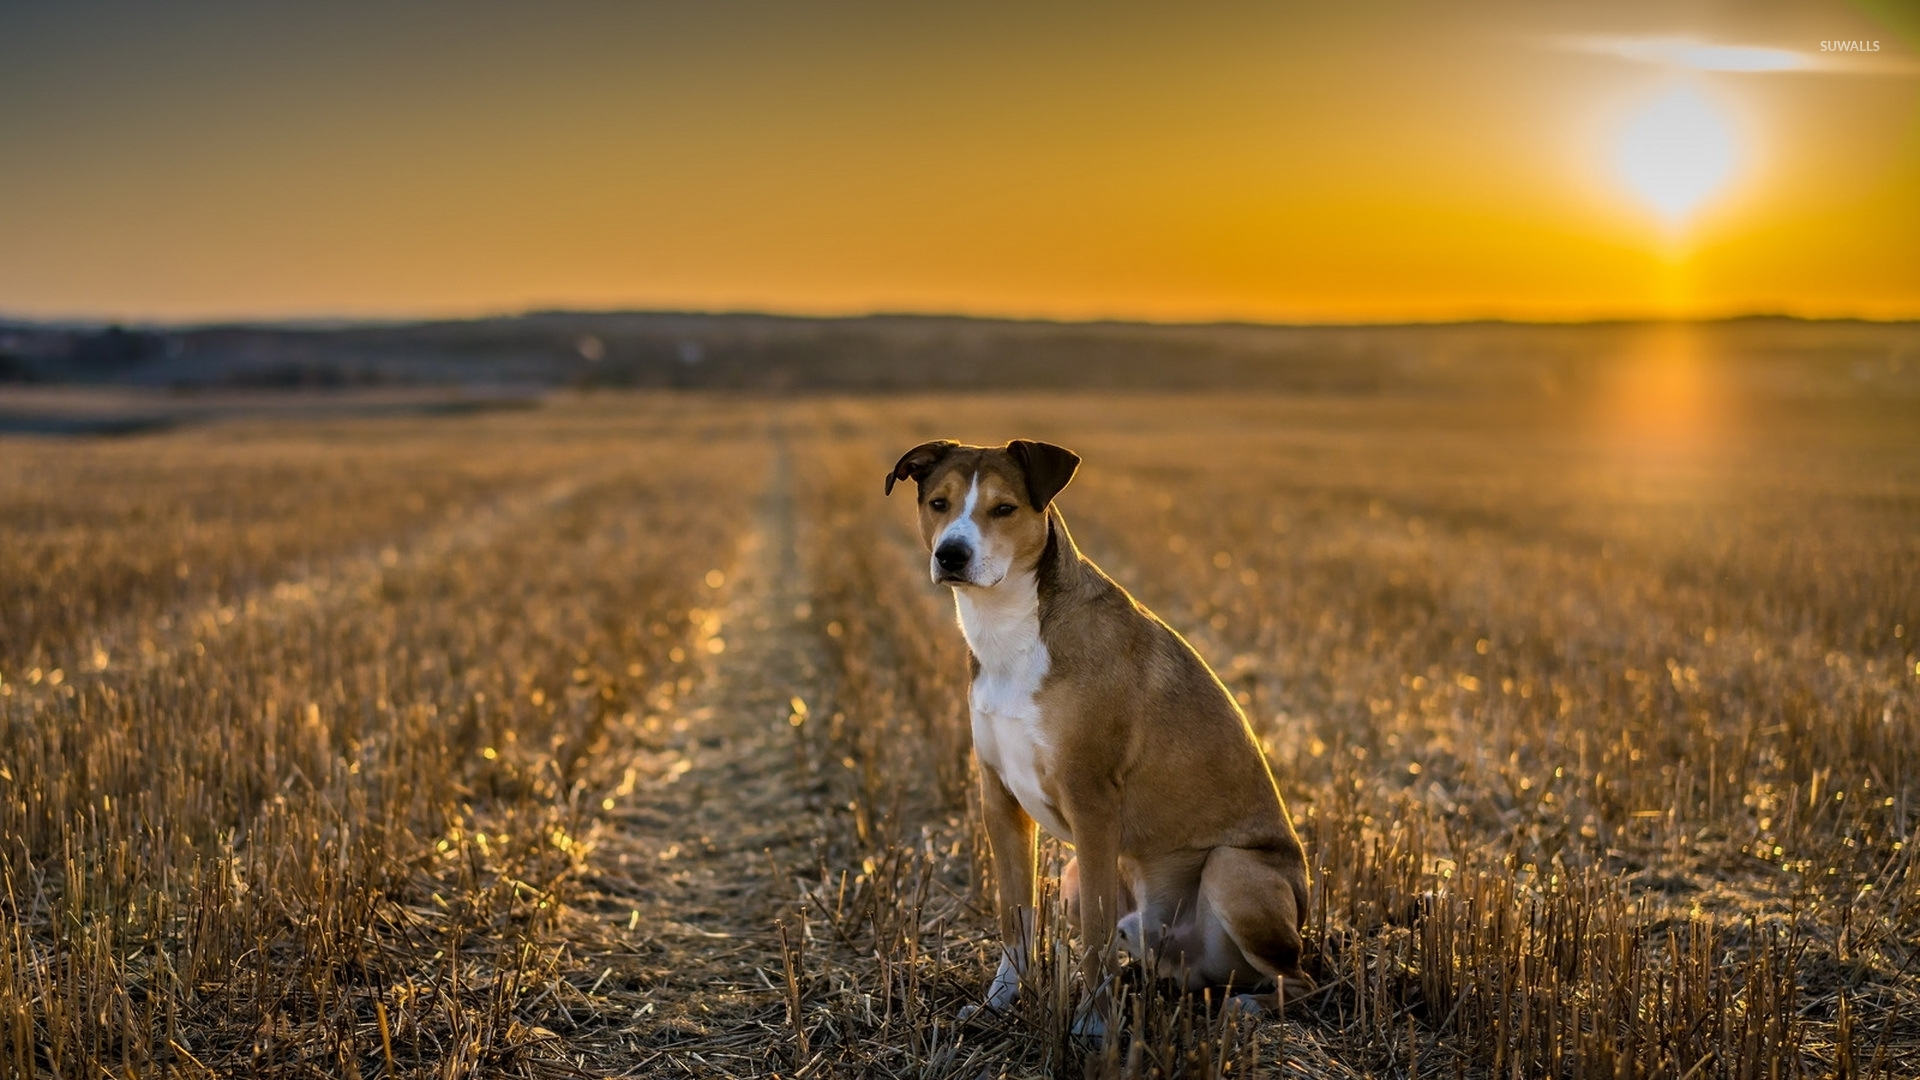 Wonderful Wallpaper Black Adorable Dog - cute-dog-on-the-field-at-sunset-50671-1920x1080  Gallery_201079  .jpg